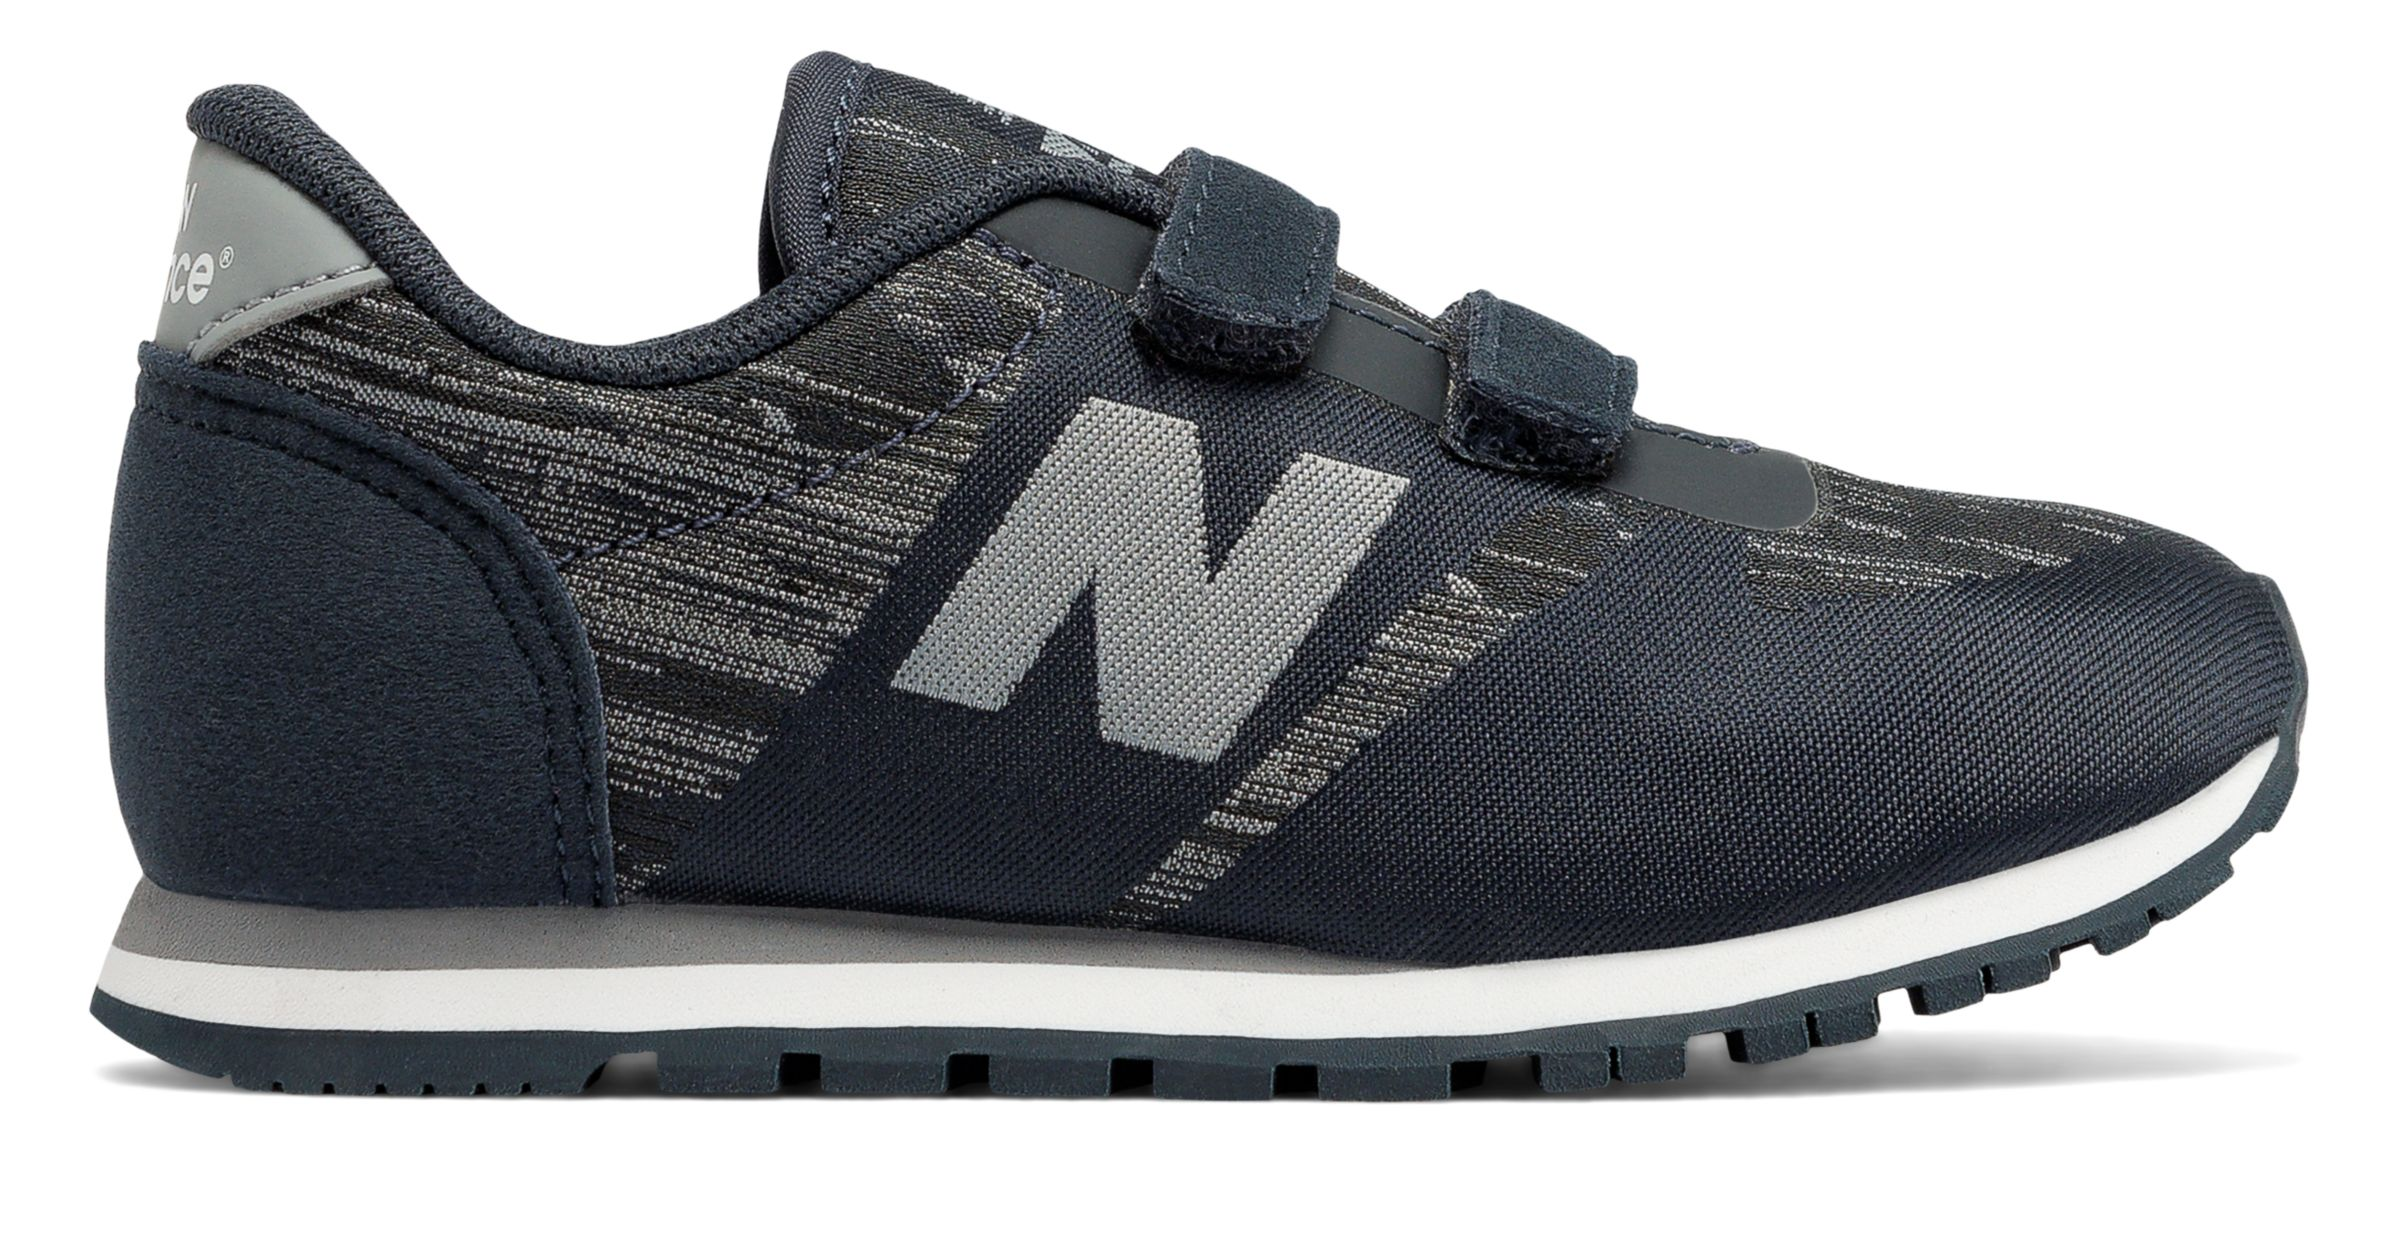 c9098125d6458 New Balance Kid's 420 Hook and Loop Infant Boys Shoes Black with ...